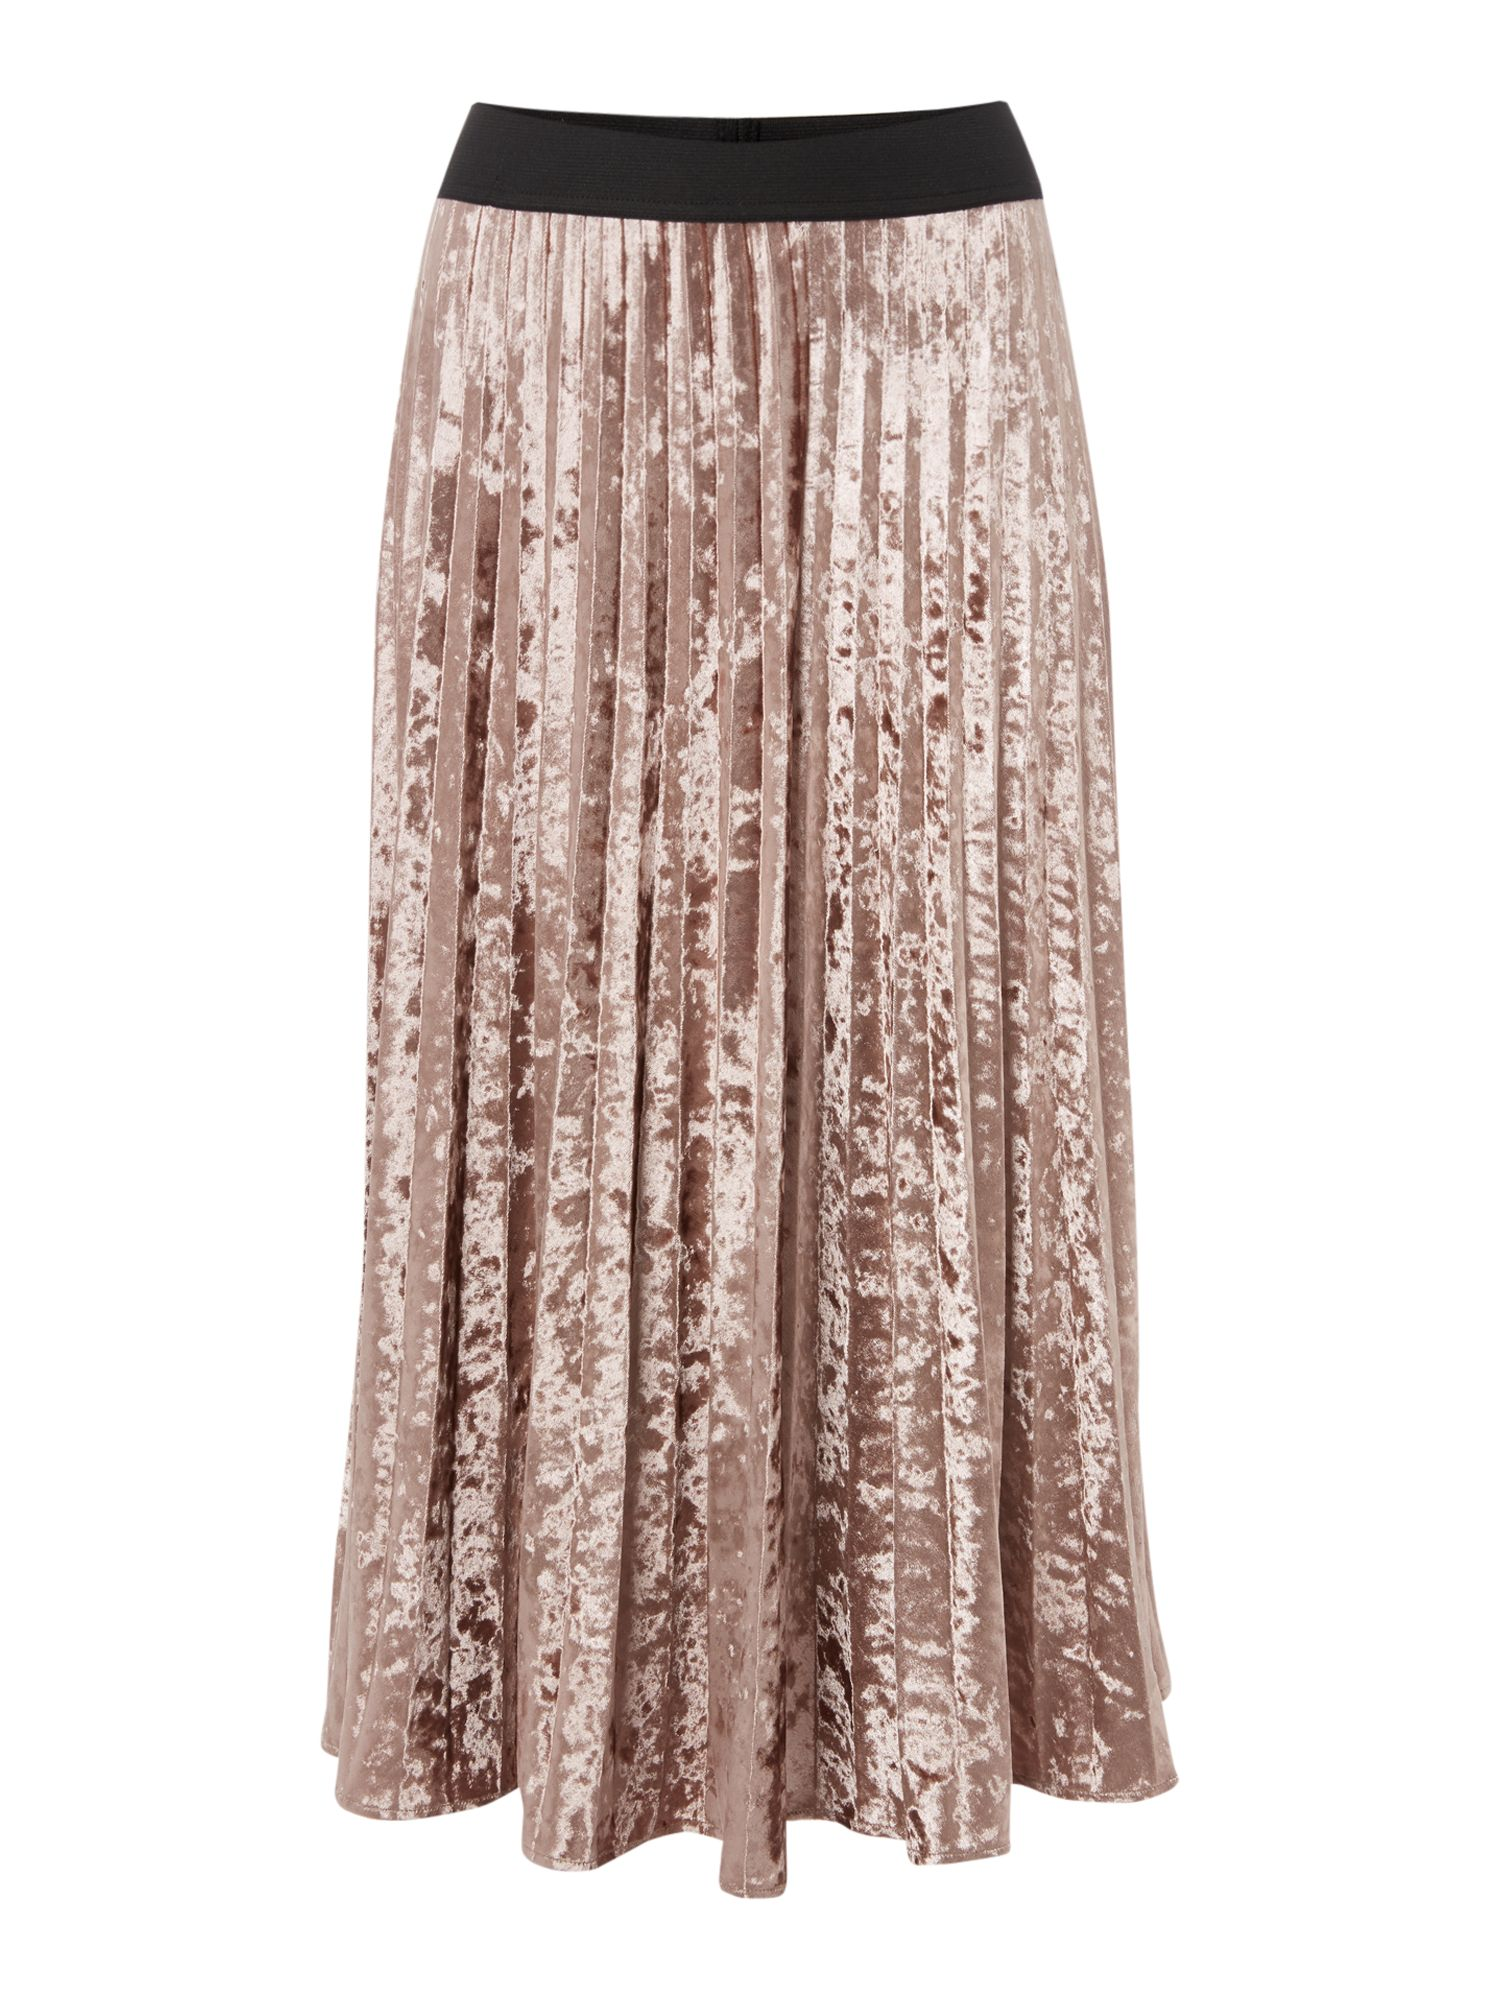 Label Lab VELVET PLEATED SKIRT, Pink